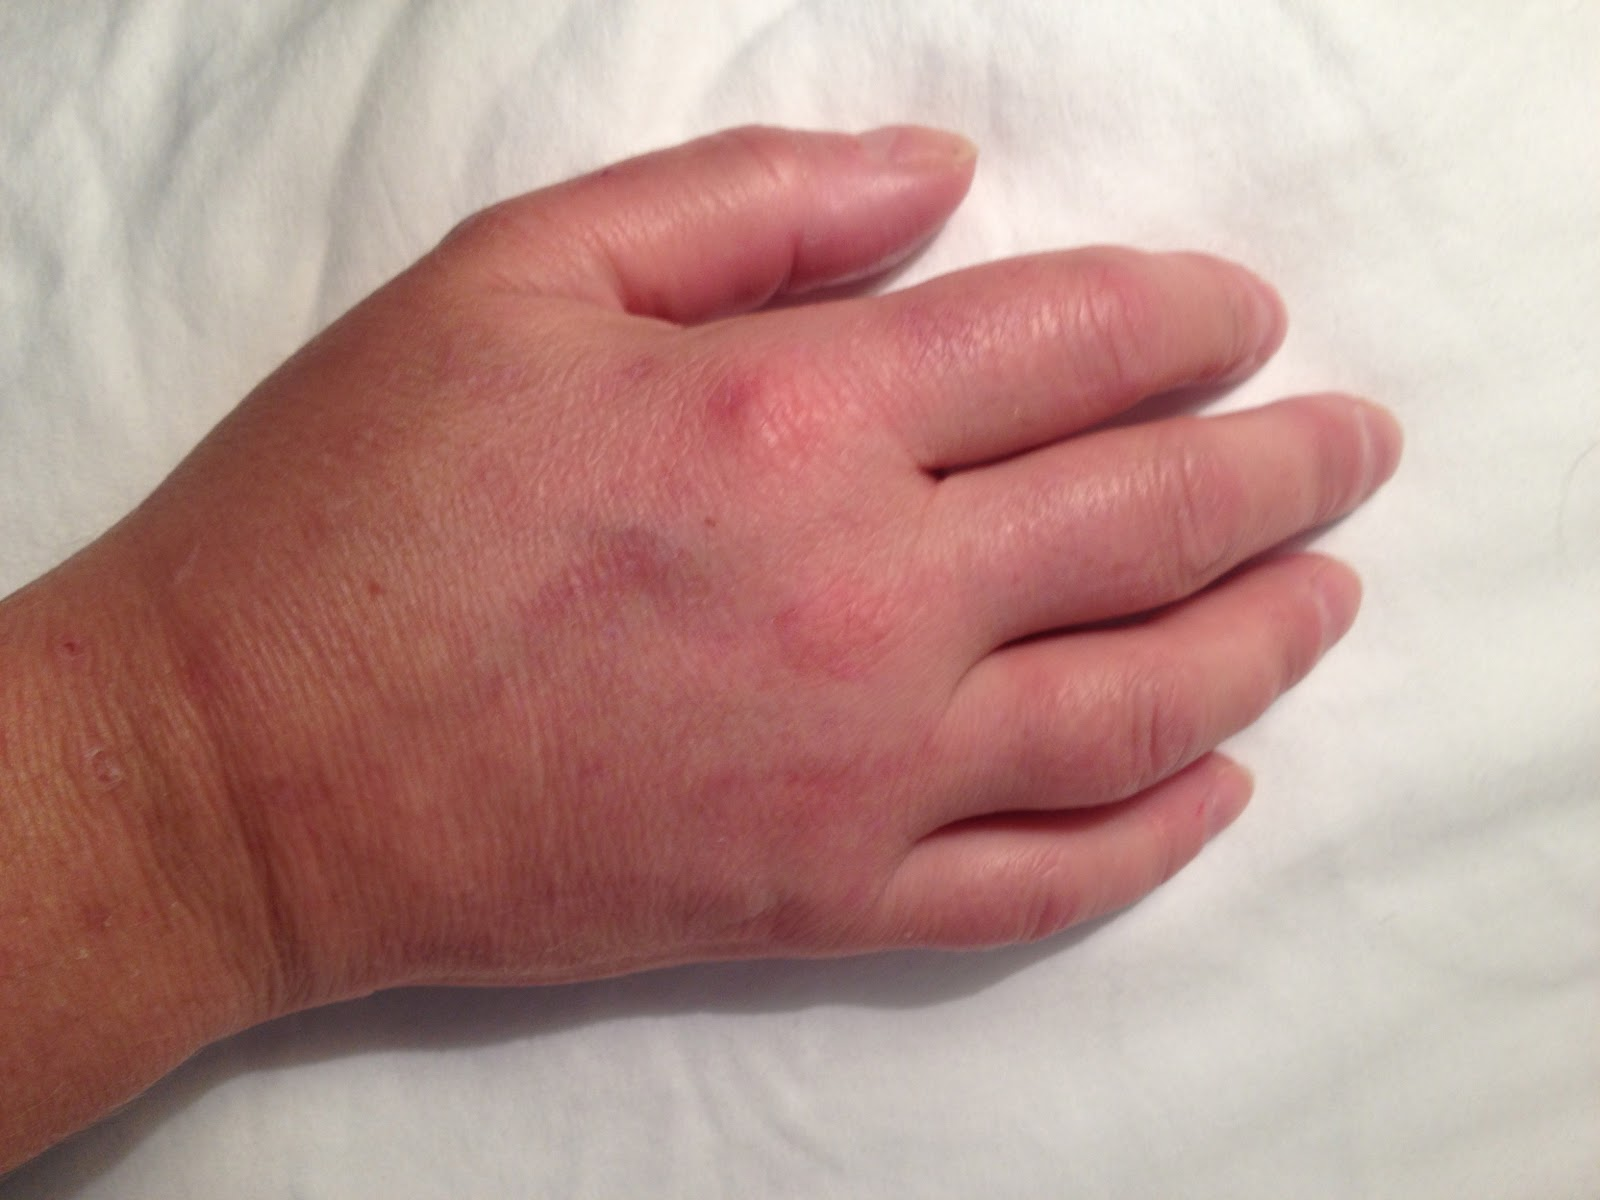 Swollen Thumb, Joint, Pad, Knuckle Causes, Treatment